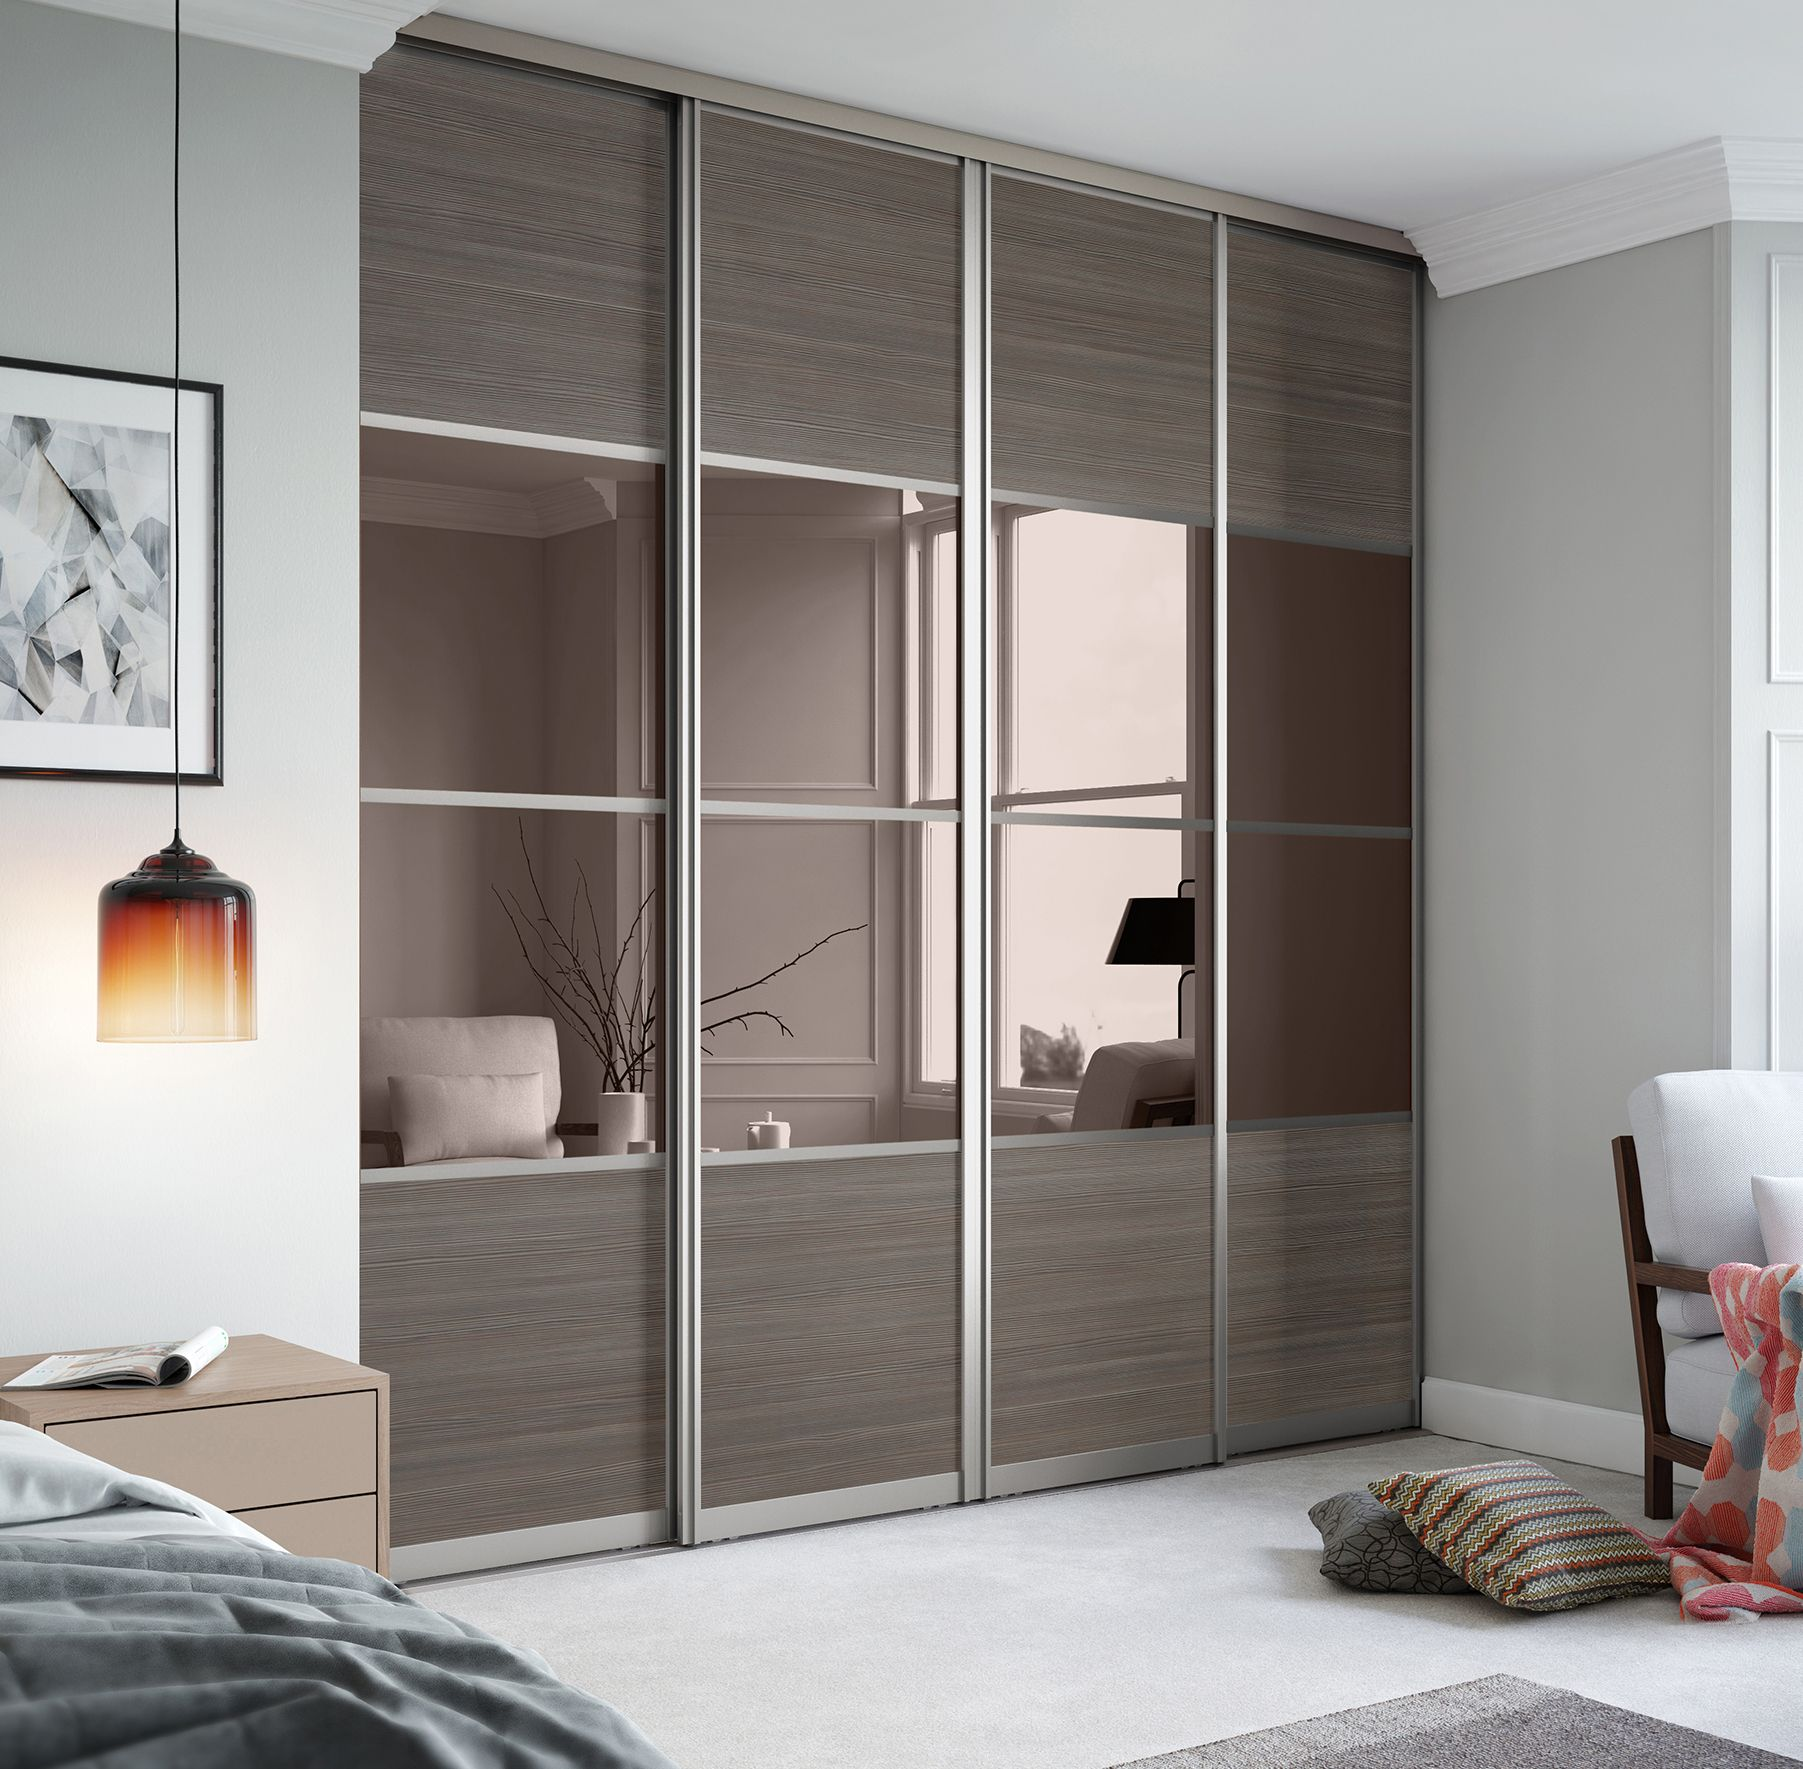 Le Meilleur Signature 4 Panel Sliding Wardrobe Doors In Wild Wood And Ce Mois Ci